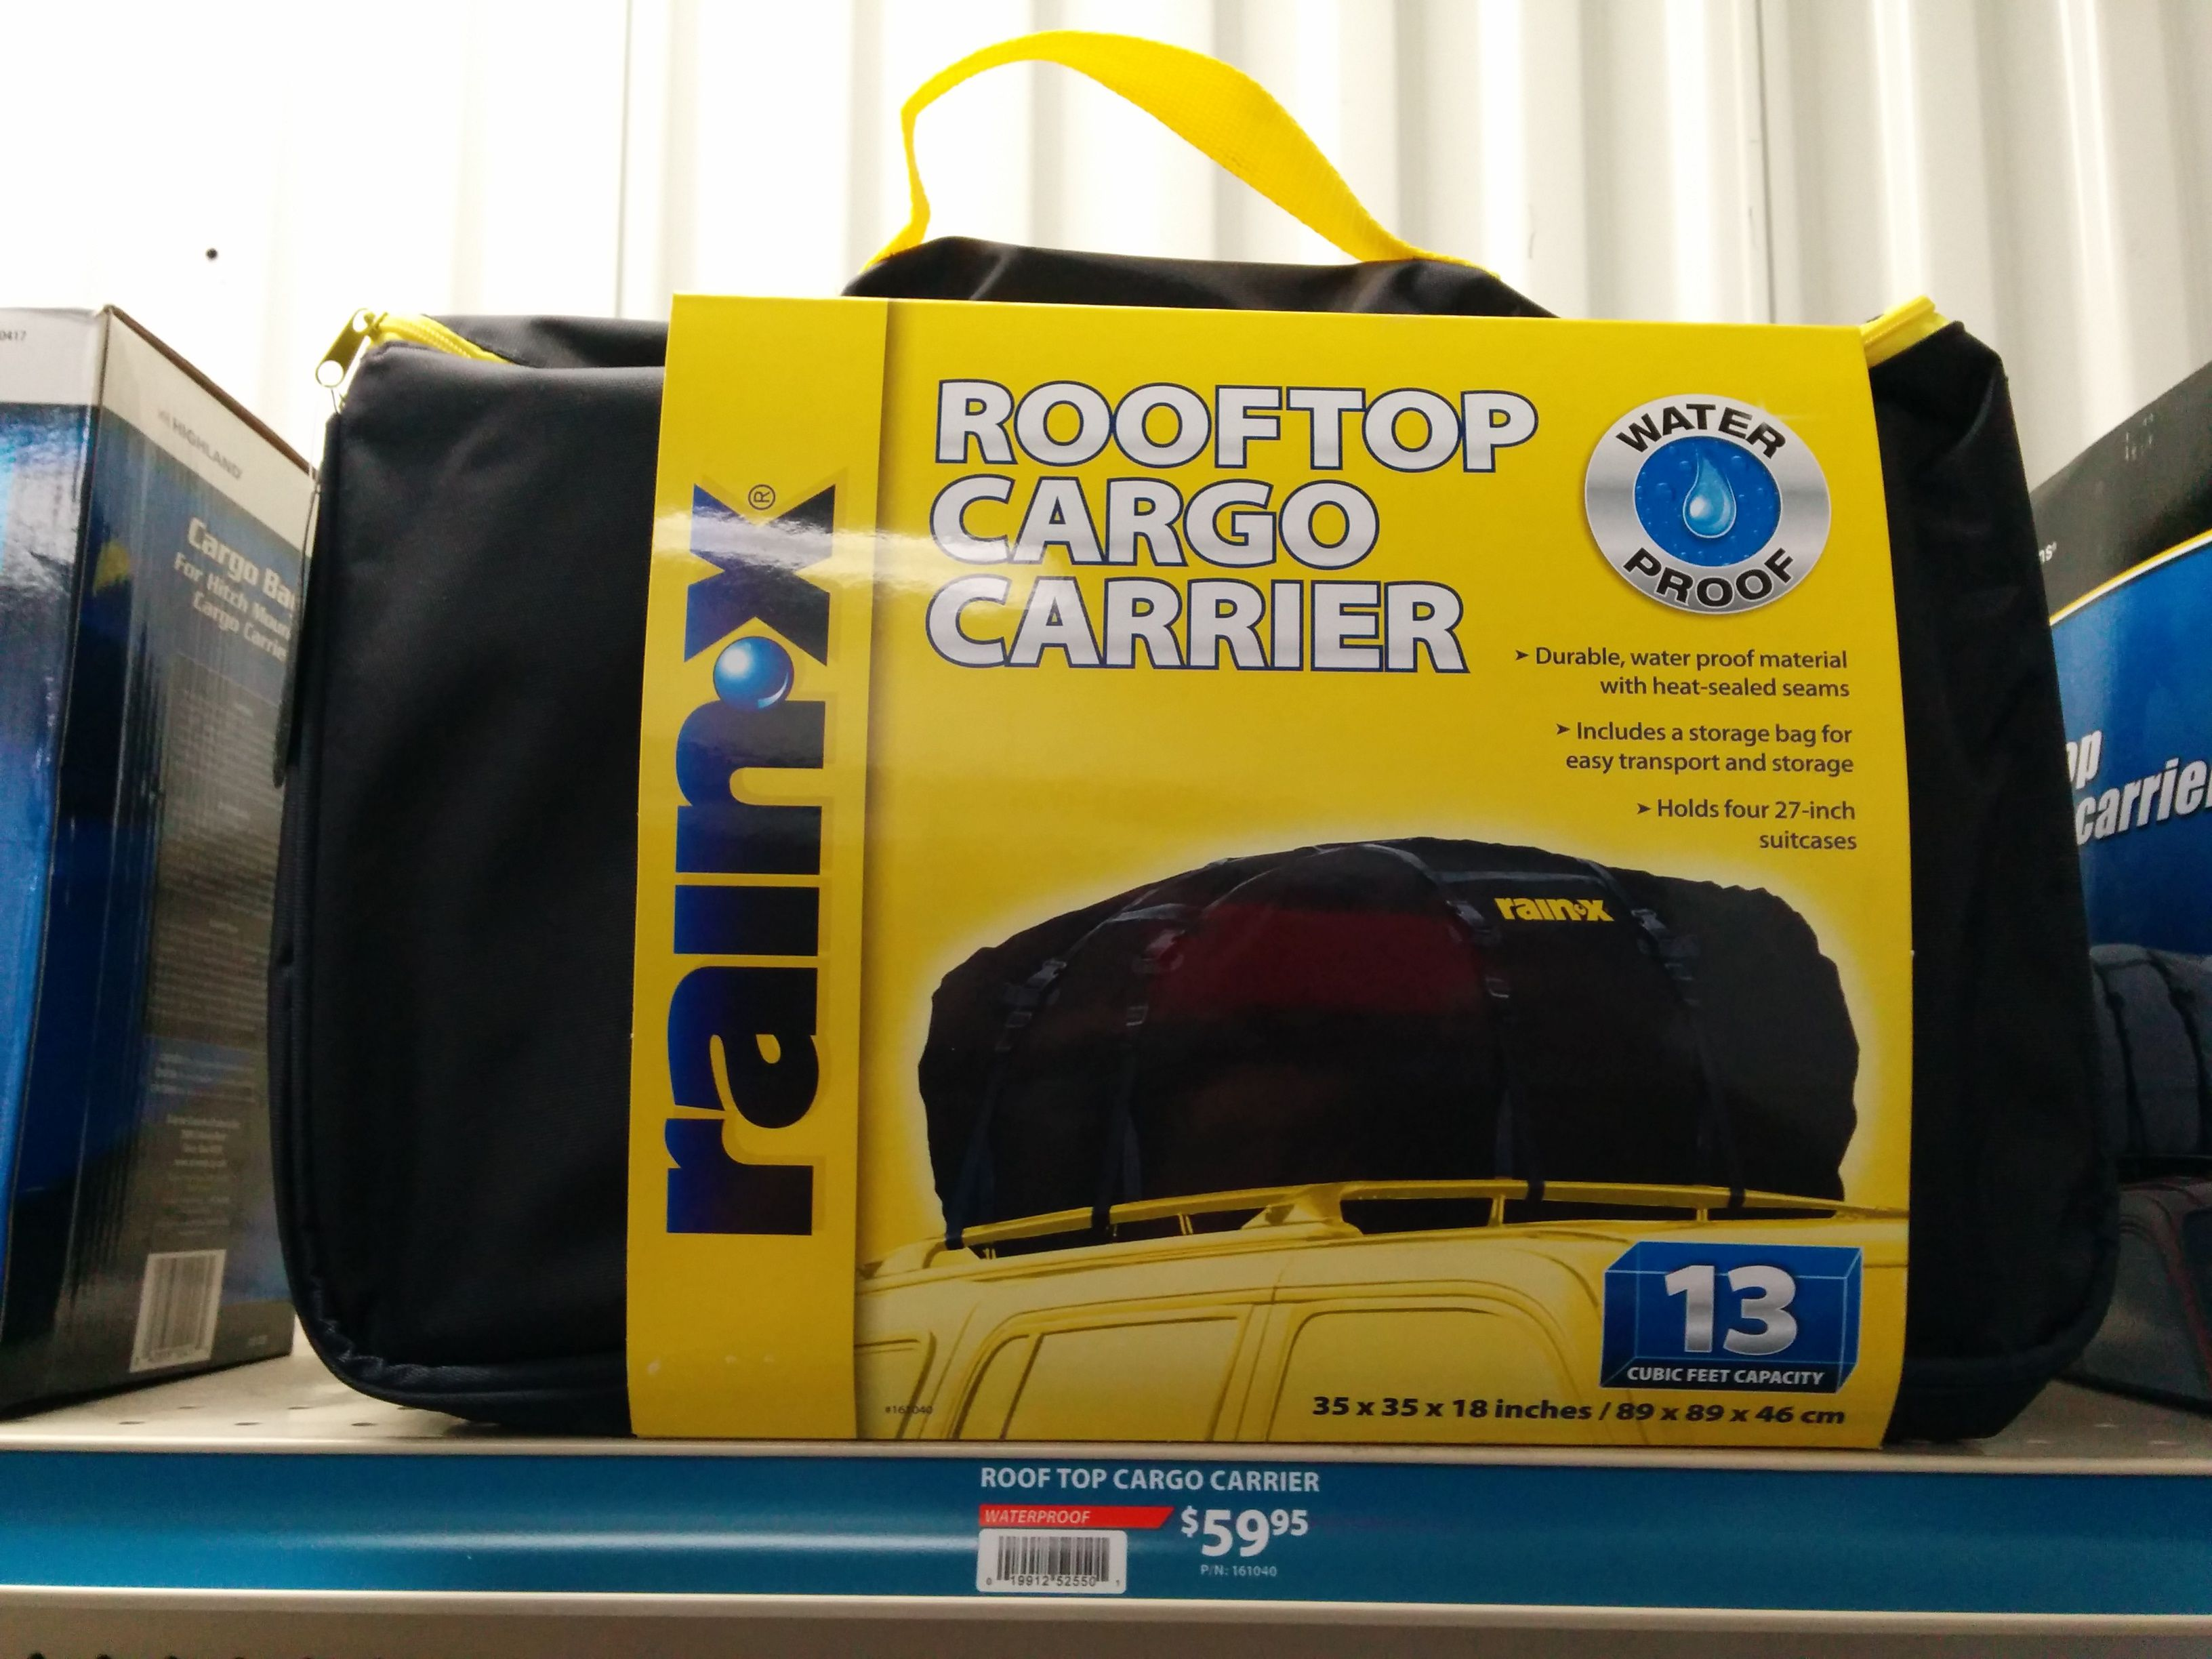 Using a Roof Rack Cargo Carrier | Roof Rack Cargo Carrier ...